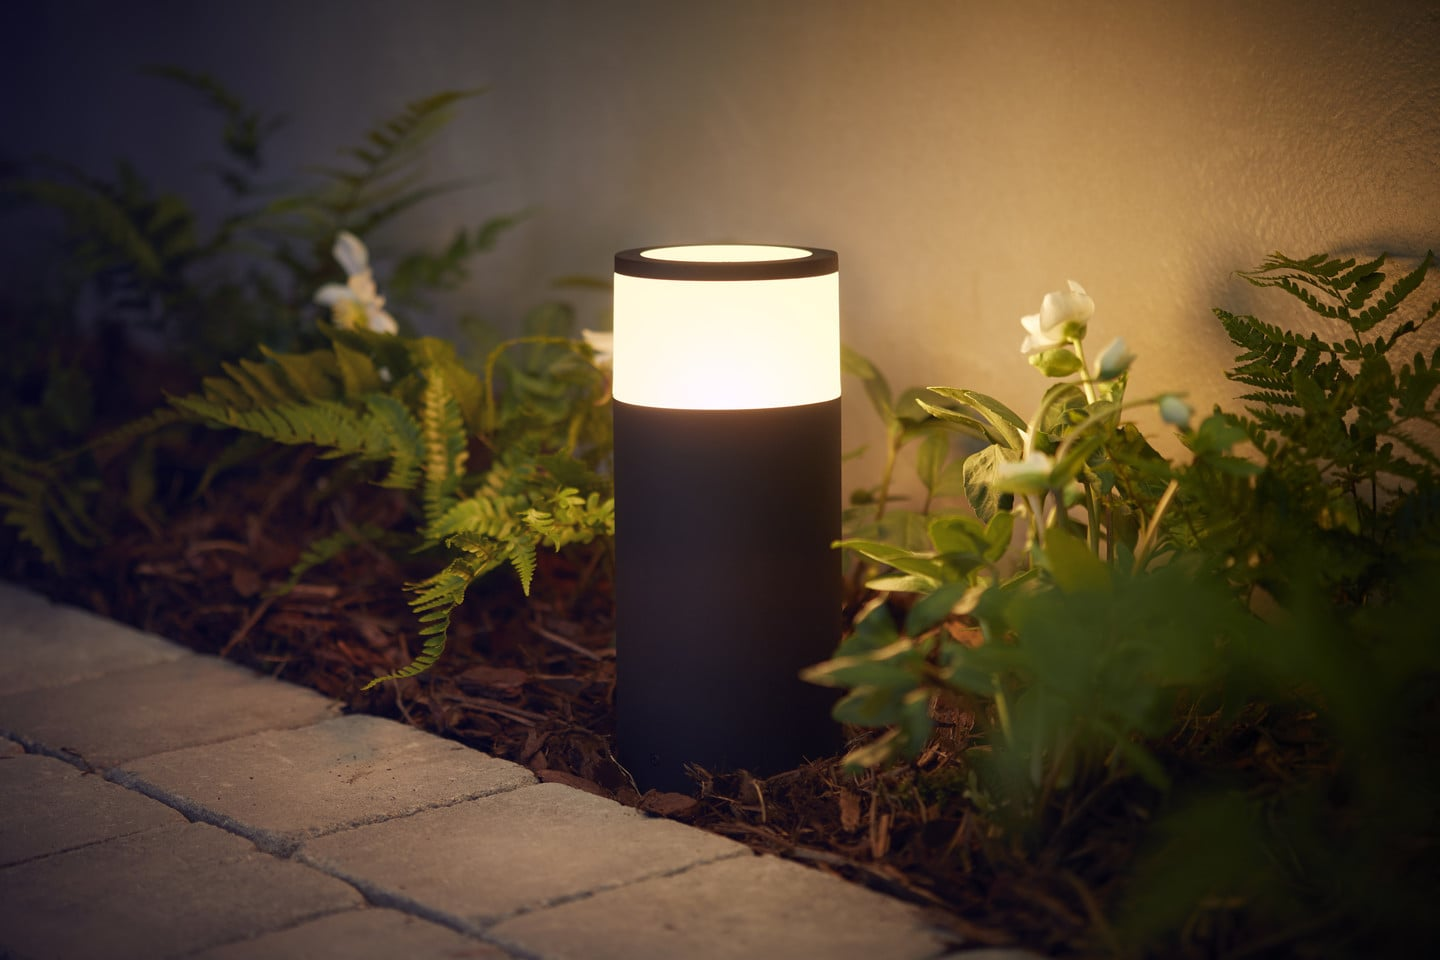 Philips Hue Outdoor Smart Lights Coming in July